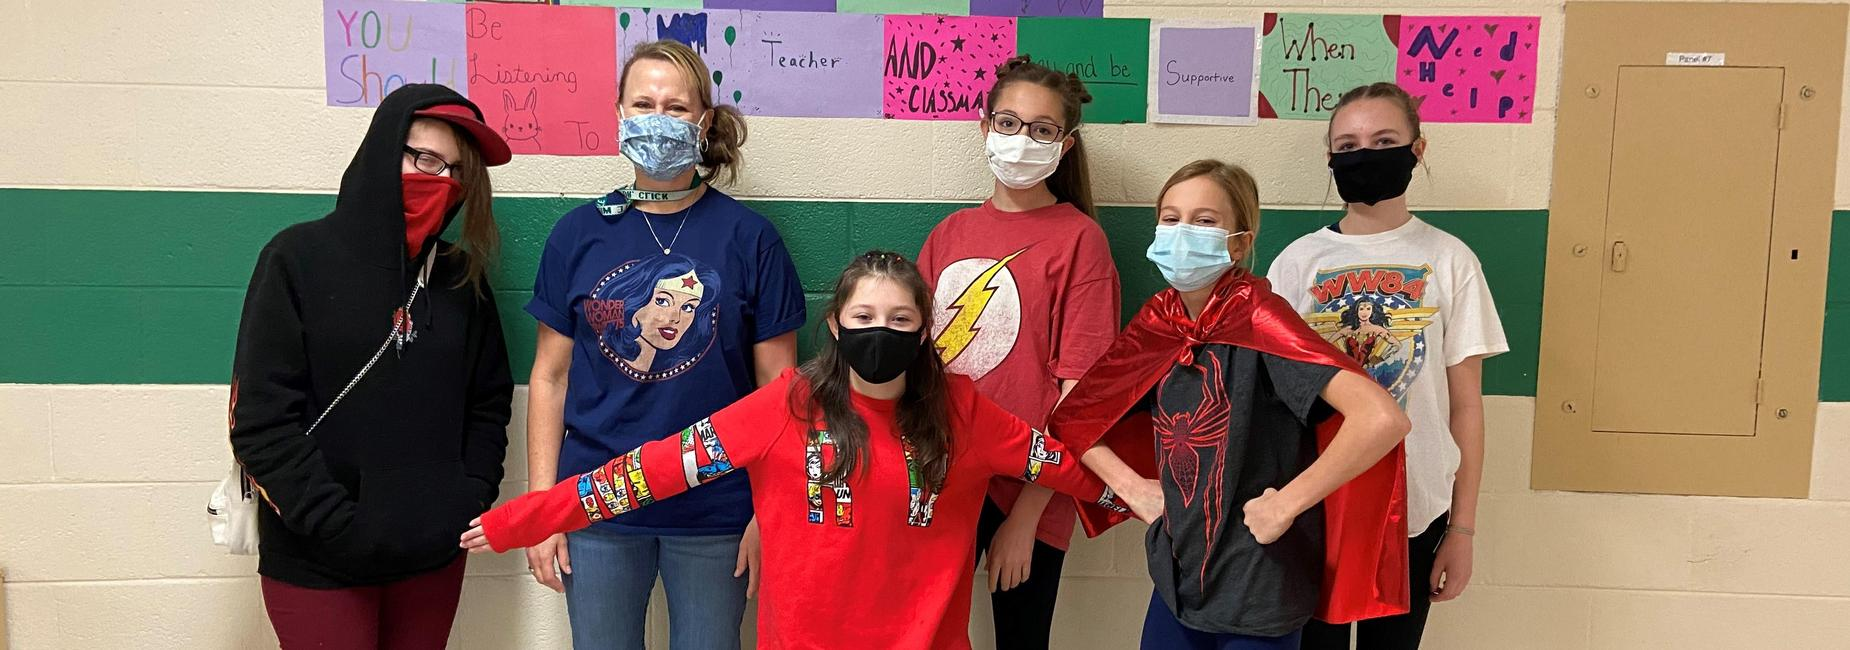 students dressed up as super heros